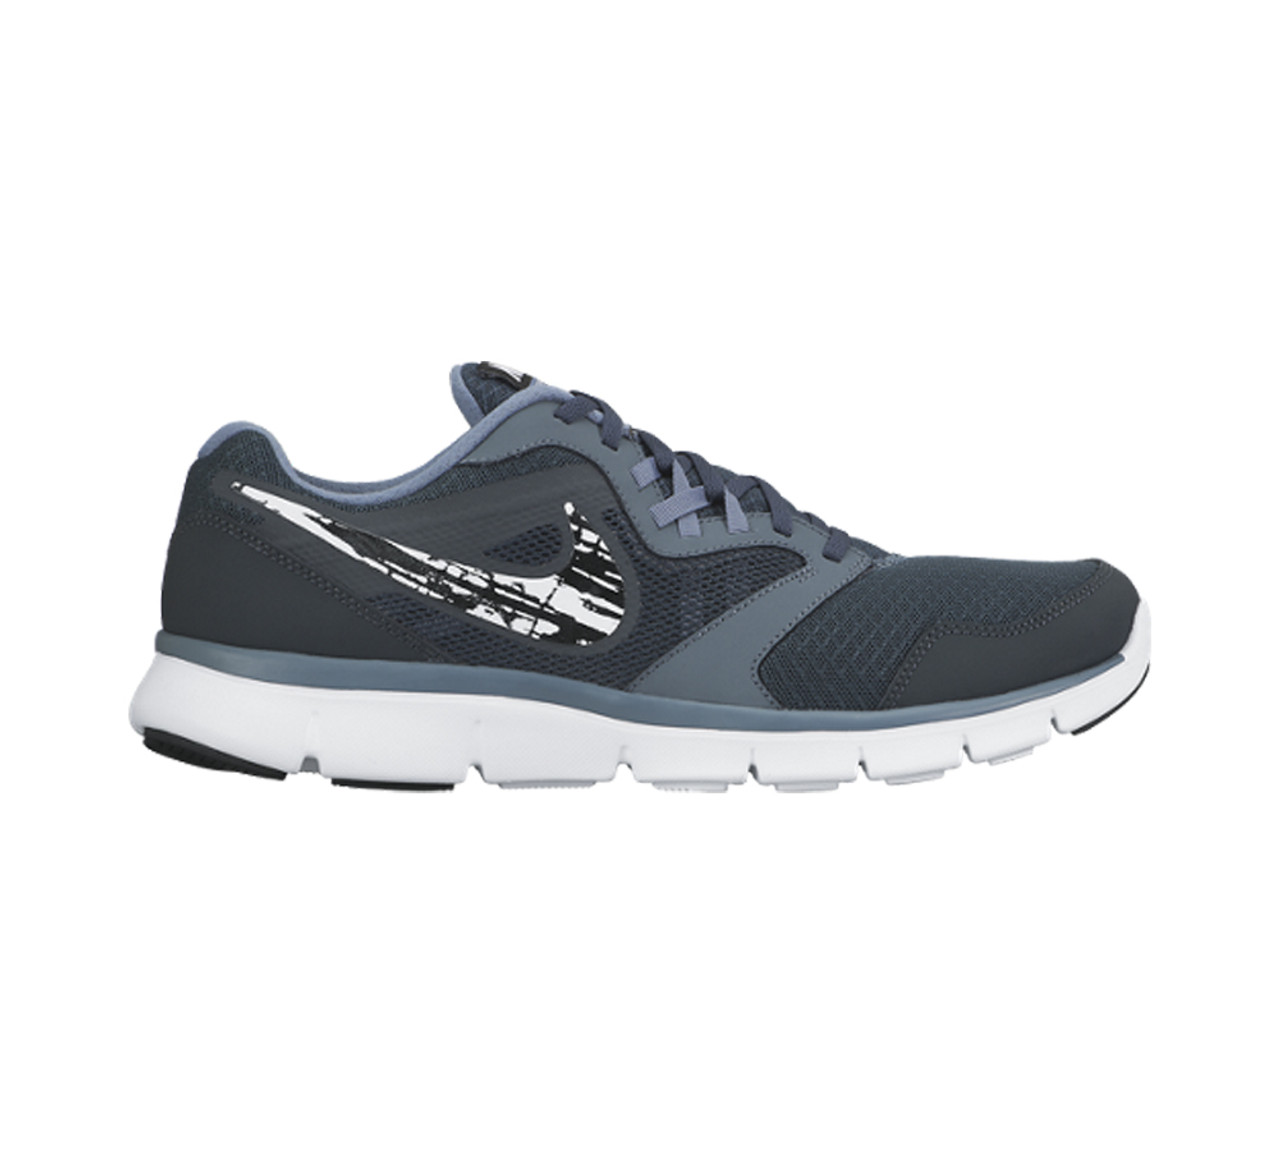 f7c2907fbd4c2 Nike Men s Flex Experience RN 3 Running Shoe Charcoal Blue Graphite - Shop  now